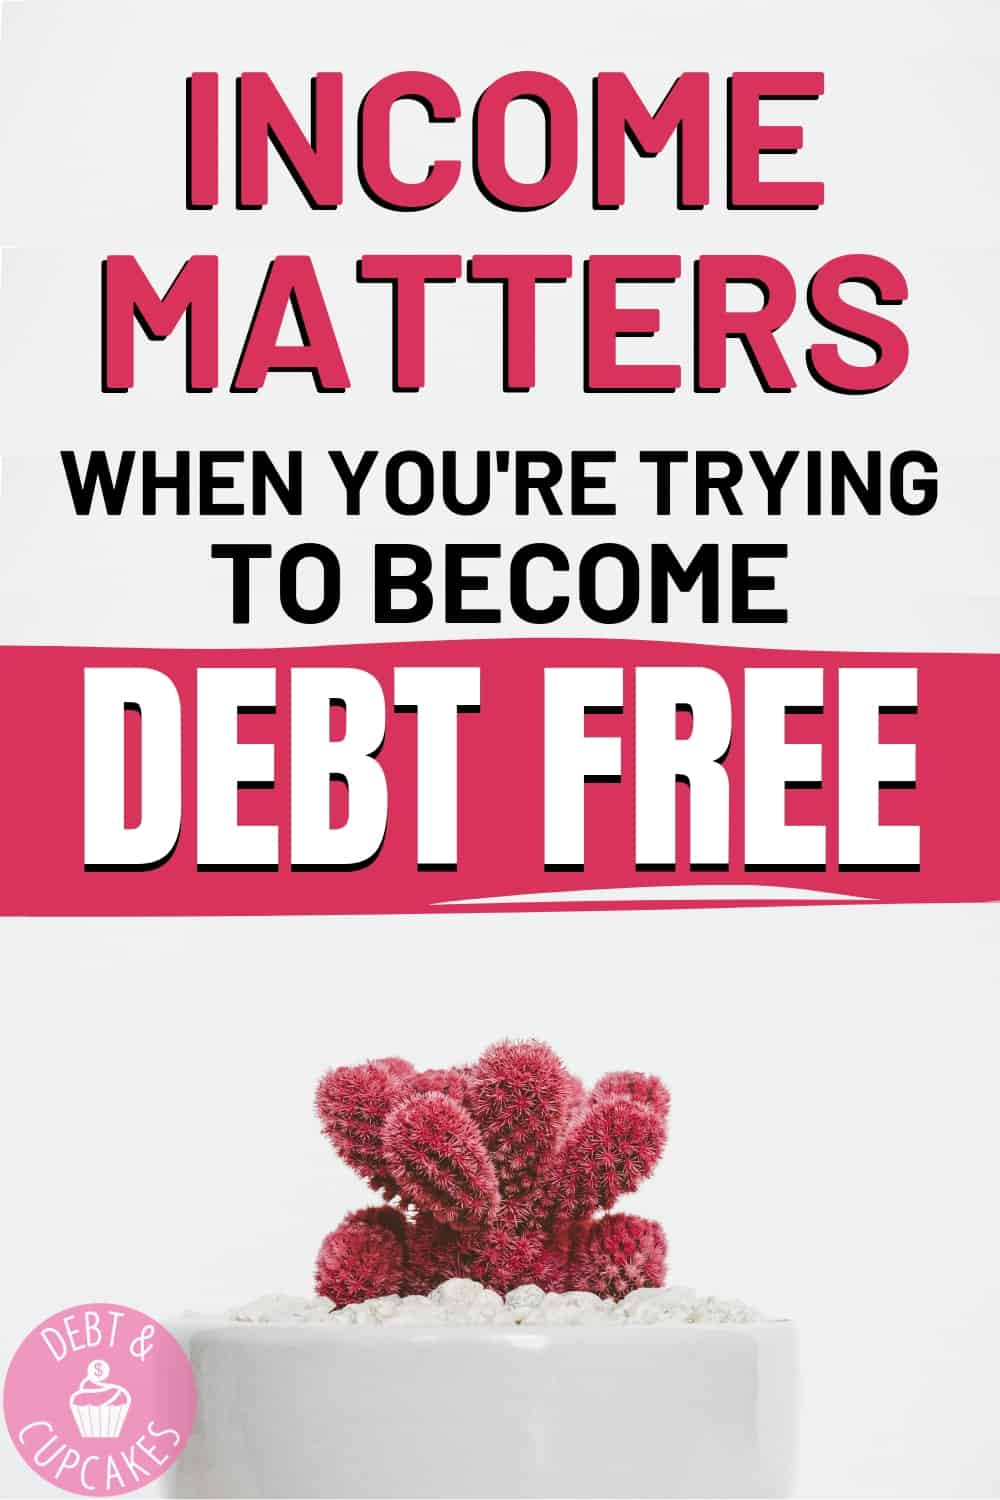 Income matters when you're trying to become debt free